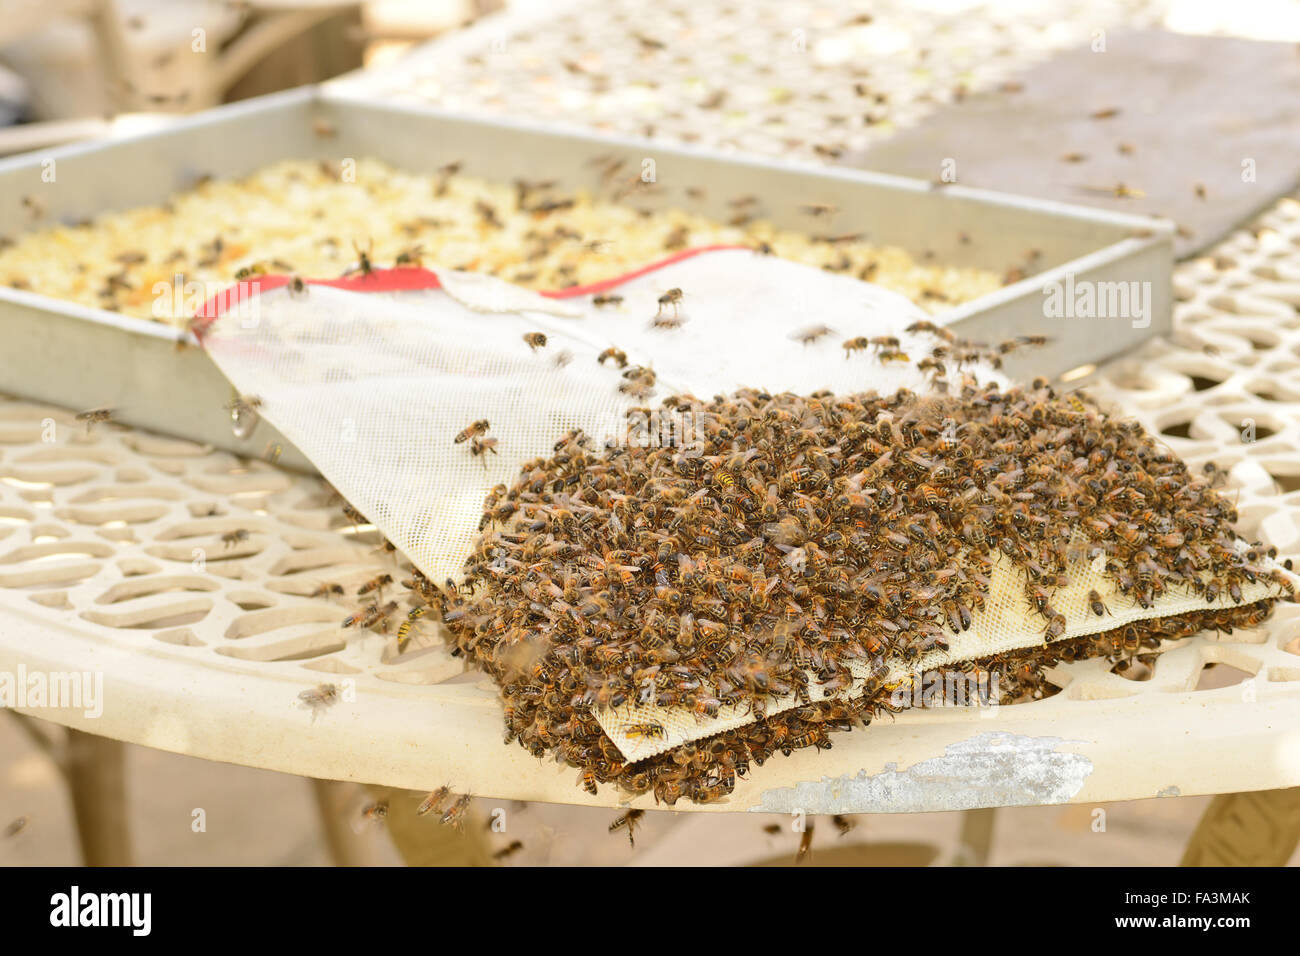 Honey bees cleaning up the beeswax bag that sits inside the honey extractor - Stock Image